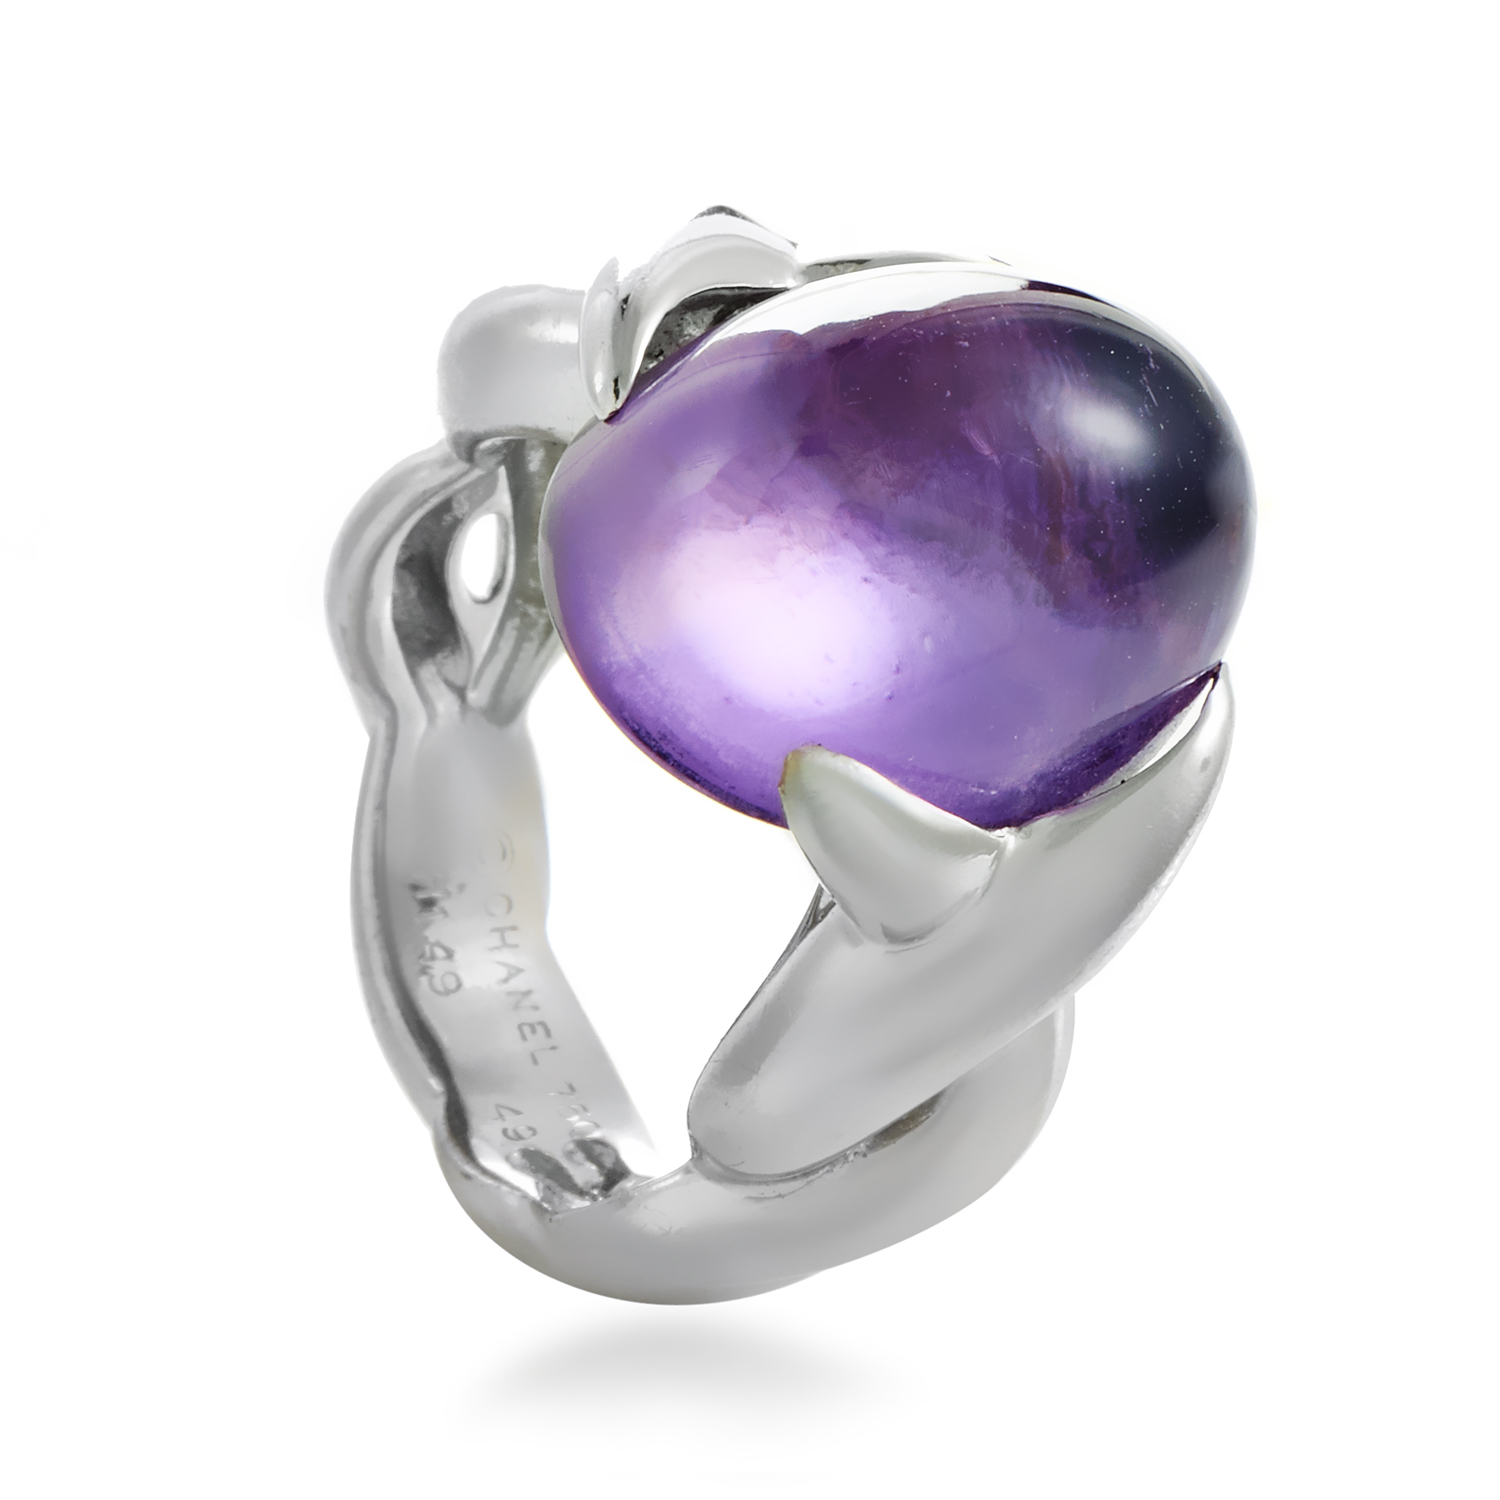 Chanel Women's 18K White Gold Amethyst Cabochon Ring